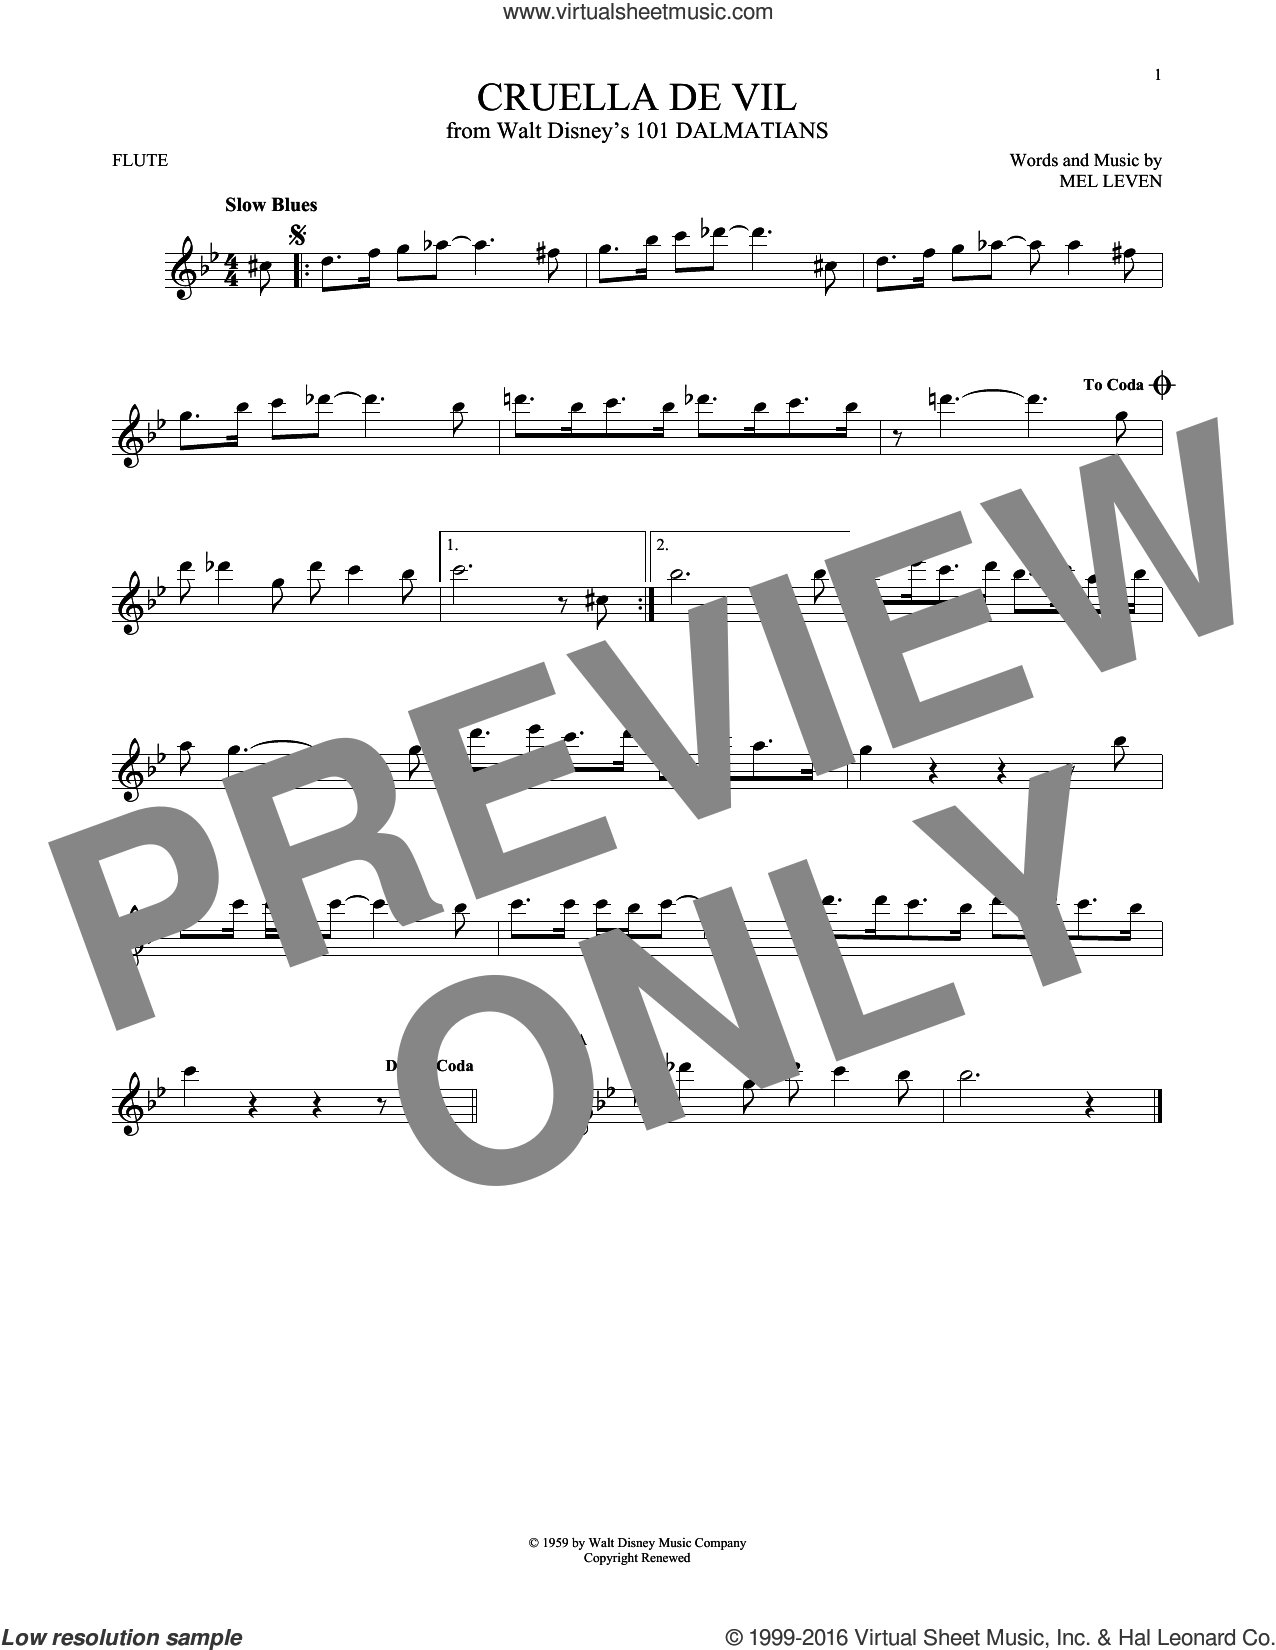 Cruella De Vil sheet music for flute solo by Mel Leven. Score Image Preview.